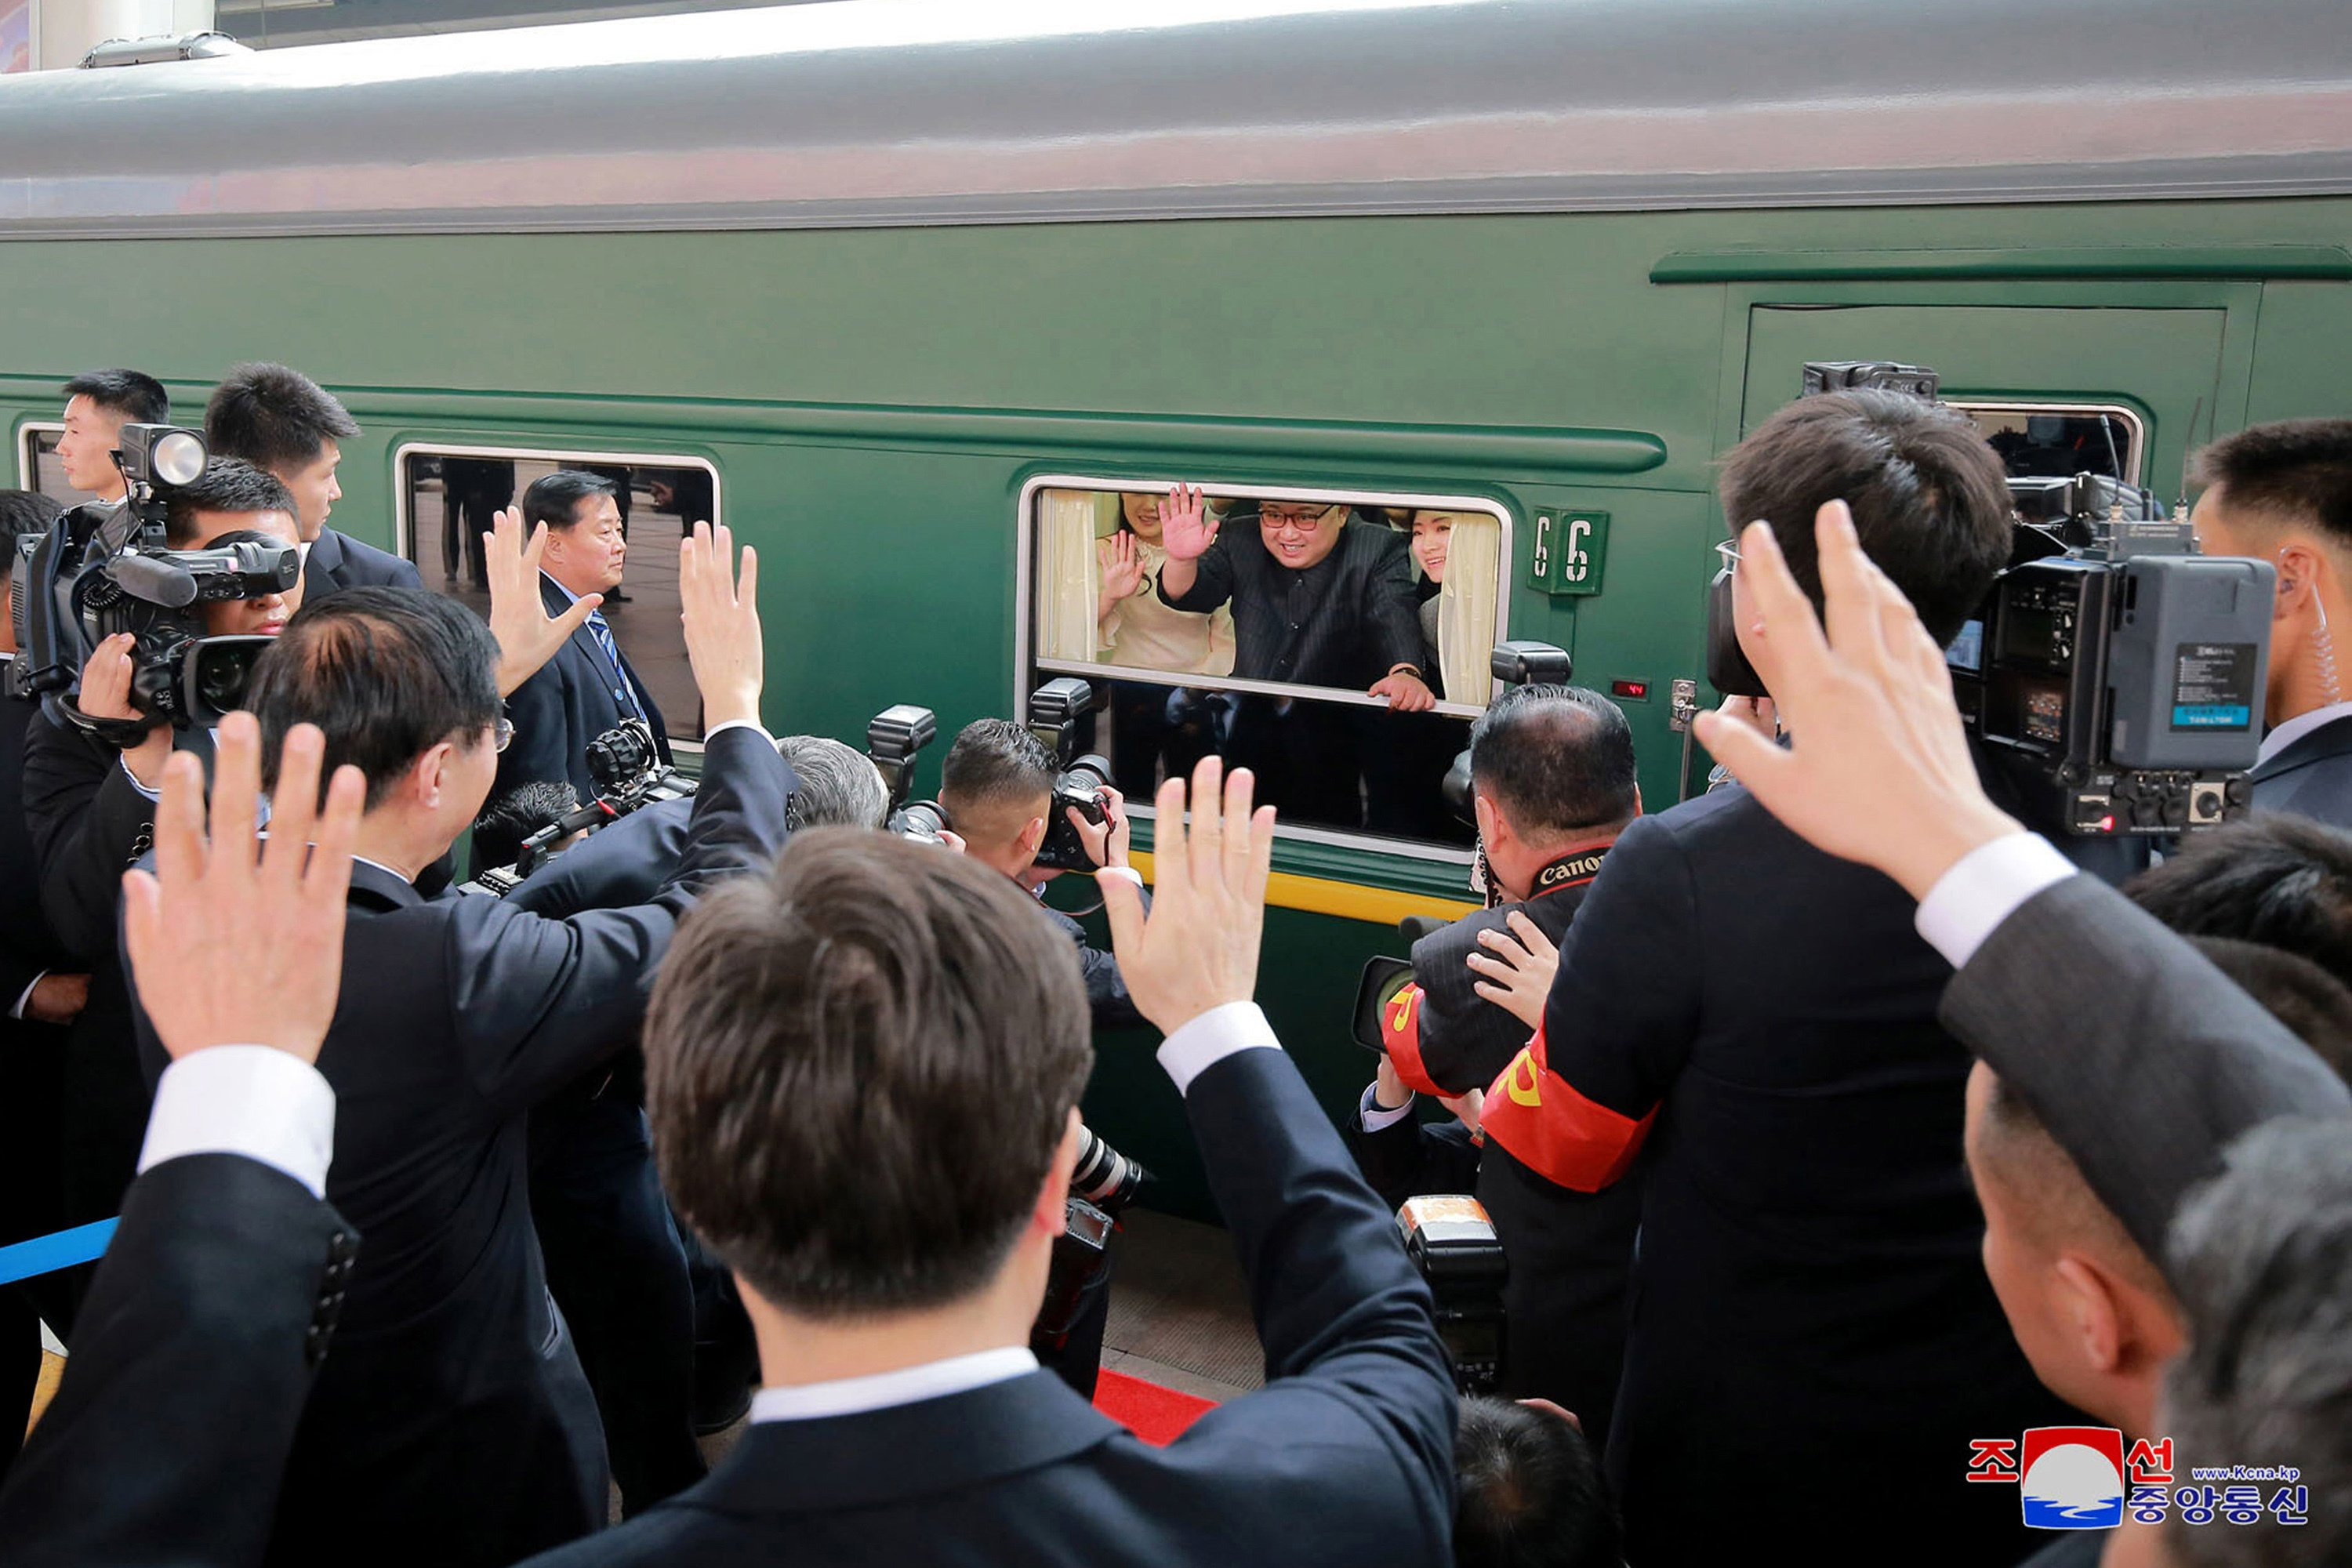 AP PHOTOS: Rulers ride the rails across history